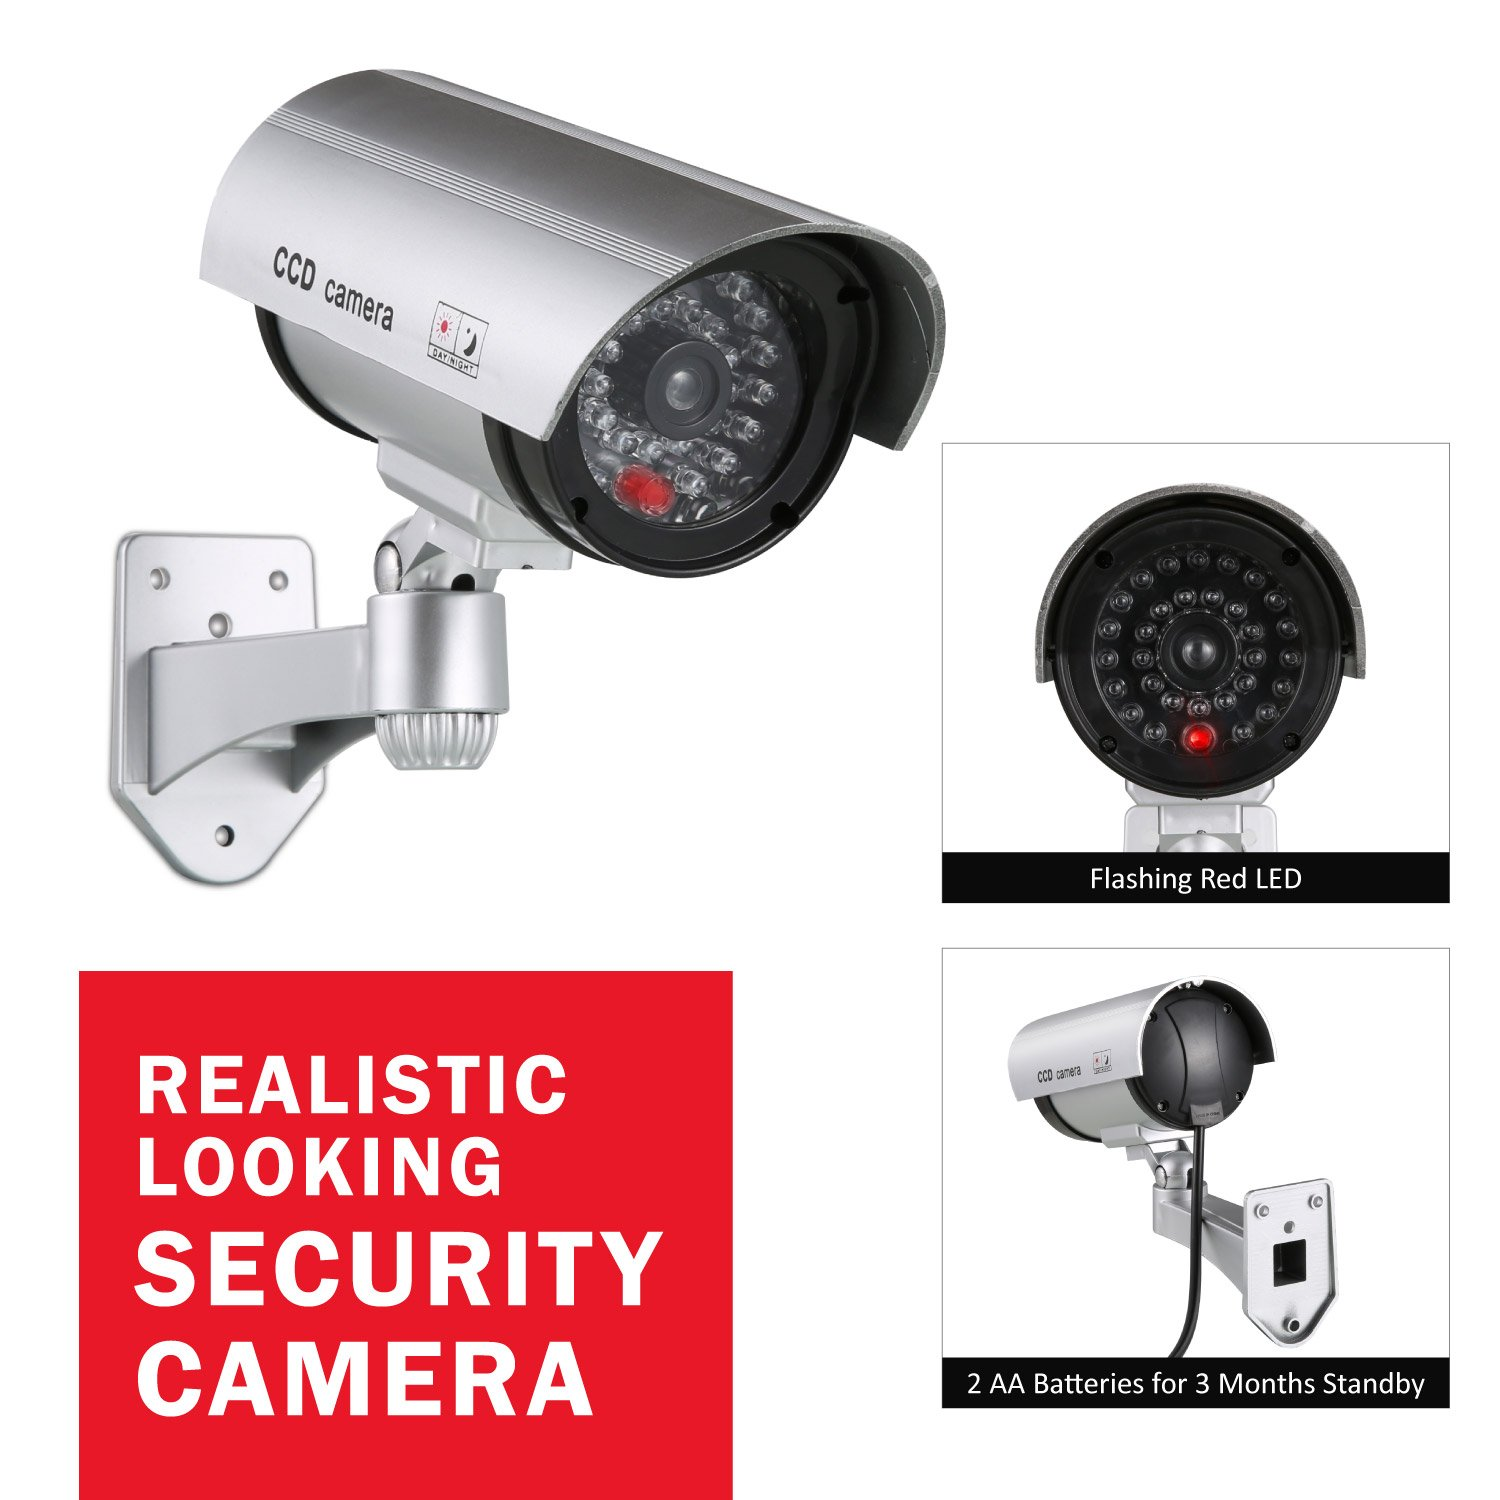 ANNKE 2 Pack Home Security Simulated Cameras with Flashing Red LED for Indoor and Outdoor use by ANNKE (Image #2)